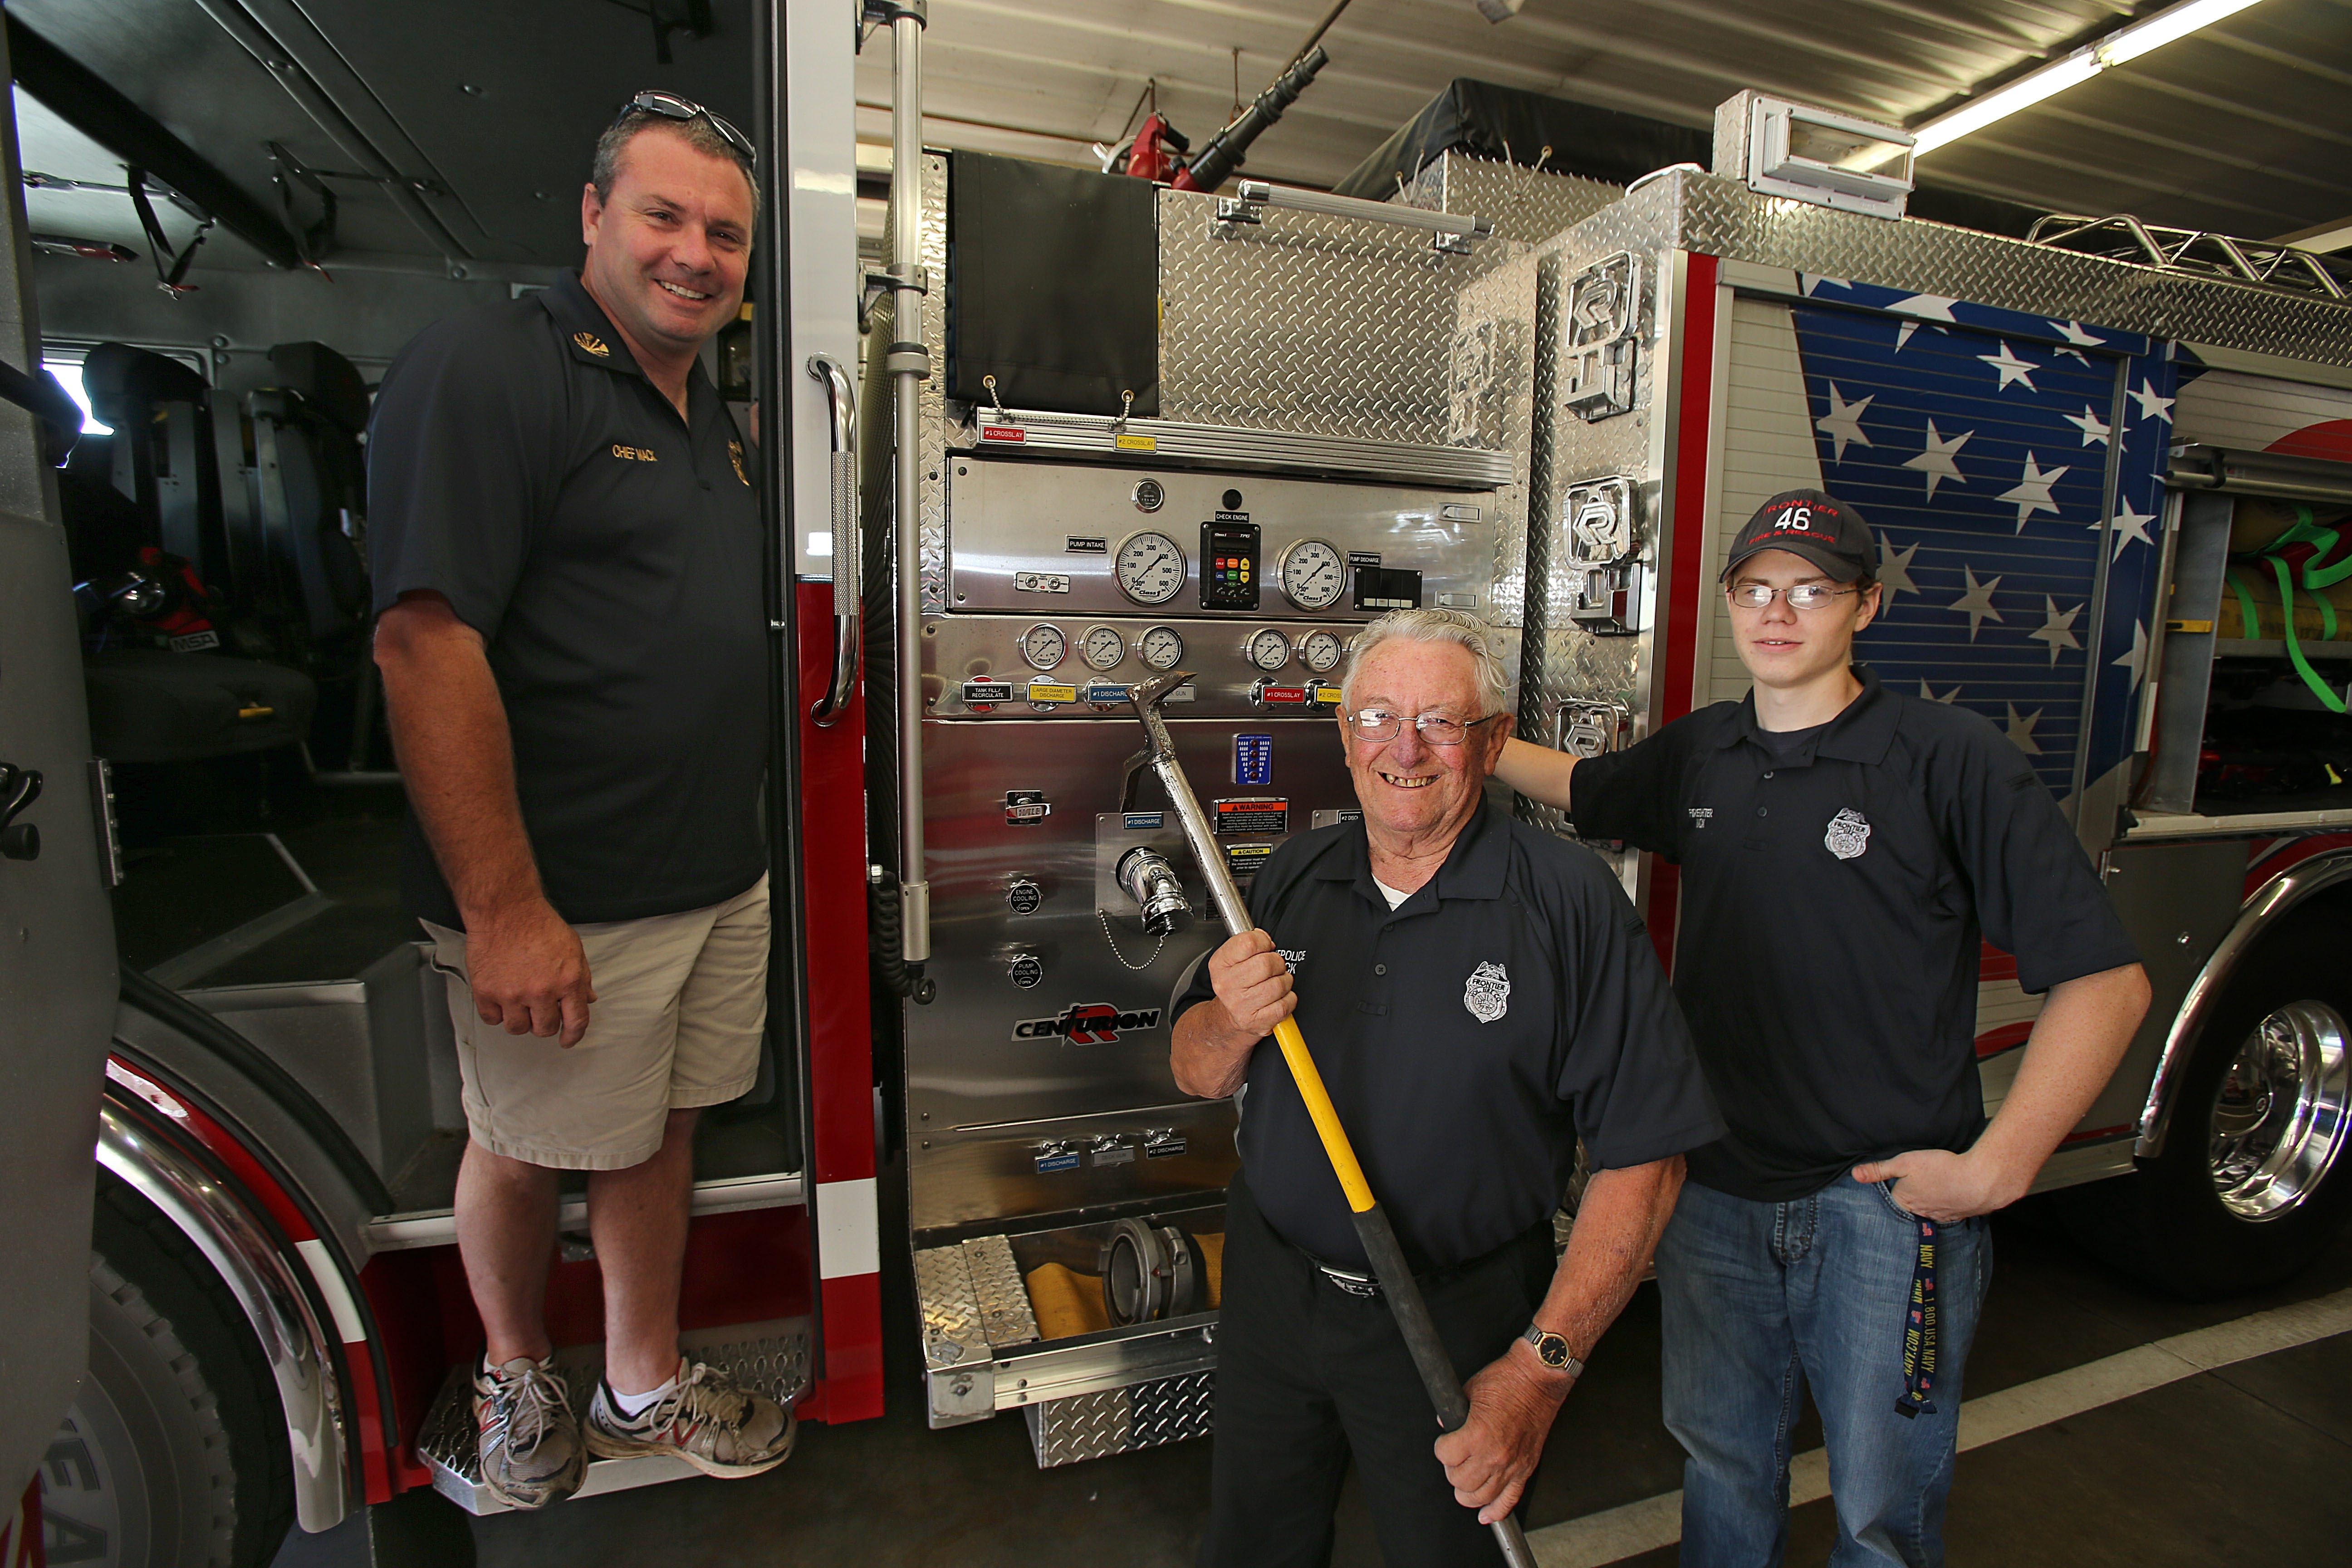 Spirit of Frontier Volunteer Fire Department is embodied by Mack family – from left, Fire Chief Bruce, 43; his dad, Harvey Jr., 79; and Bruce's son, Brandon, 18 – serving together at station in Wheatfield. The late Harvey Mack Sr. was a charter member in 1939.